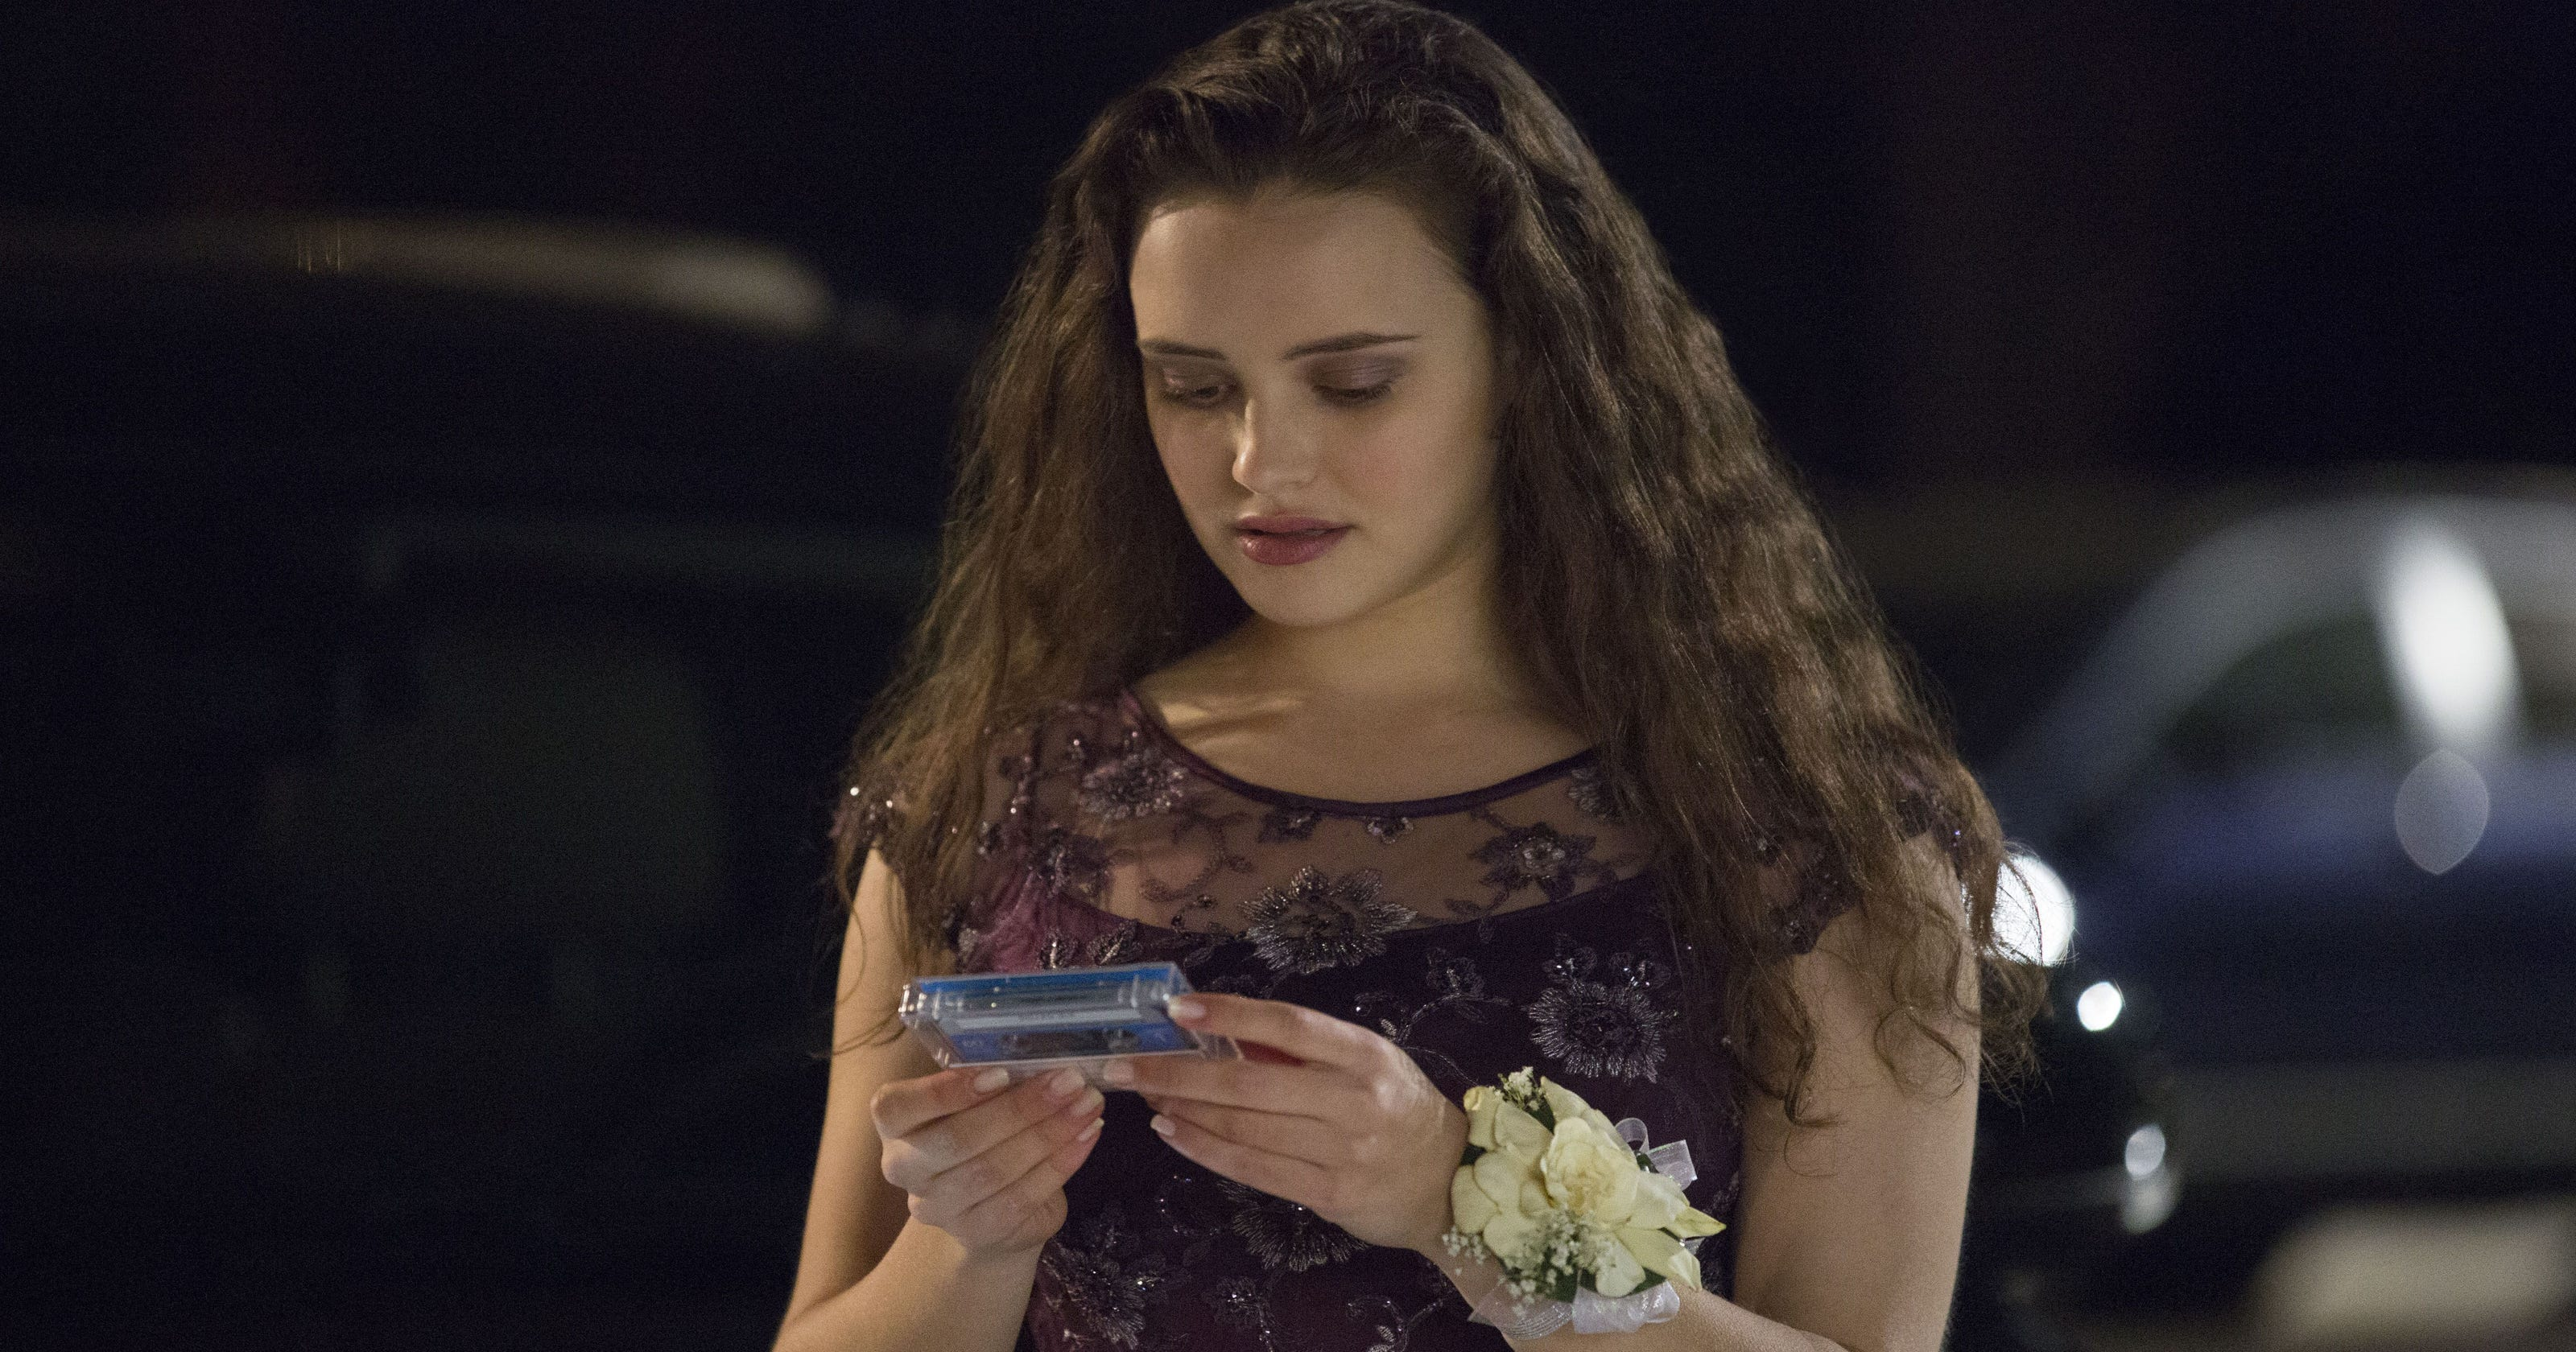 13 Reasons Why' character explains how cutting isn't suicidal